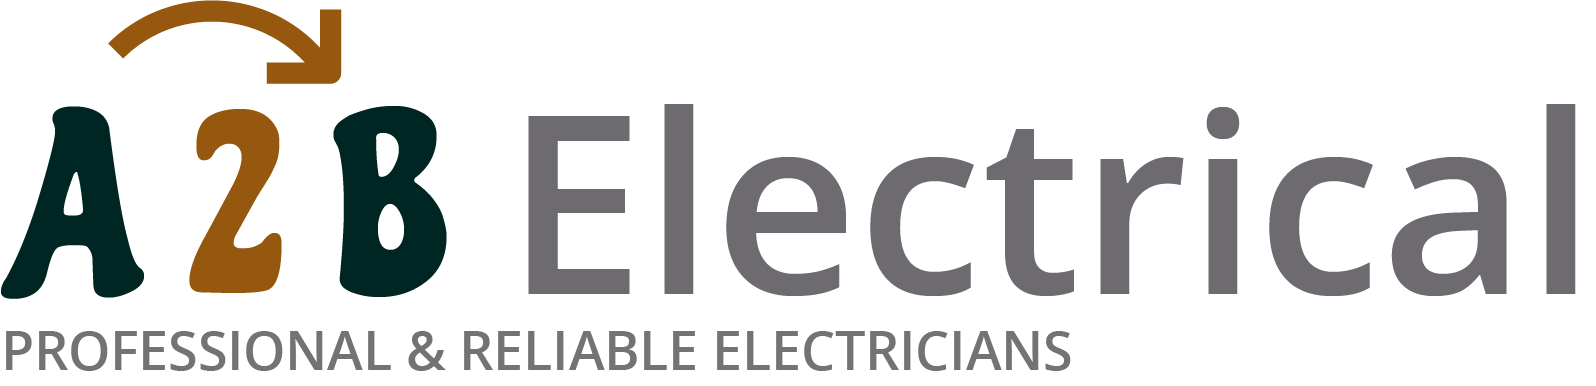 If you have electrical wiring problems in Teddington, we can provide an electrician to have a look for you.